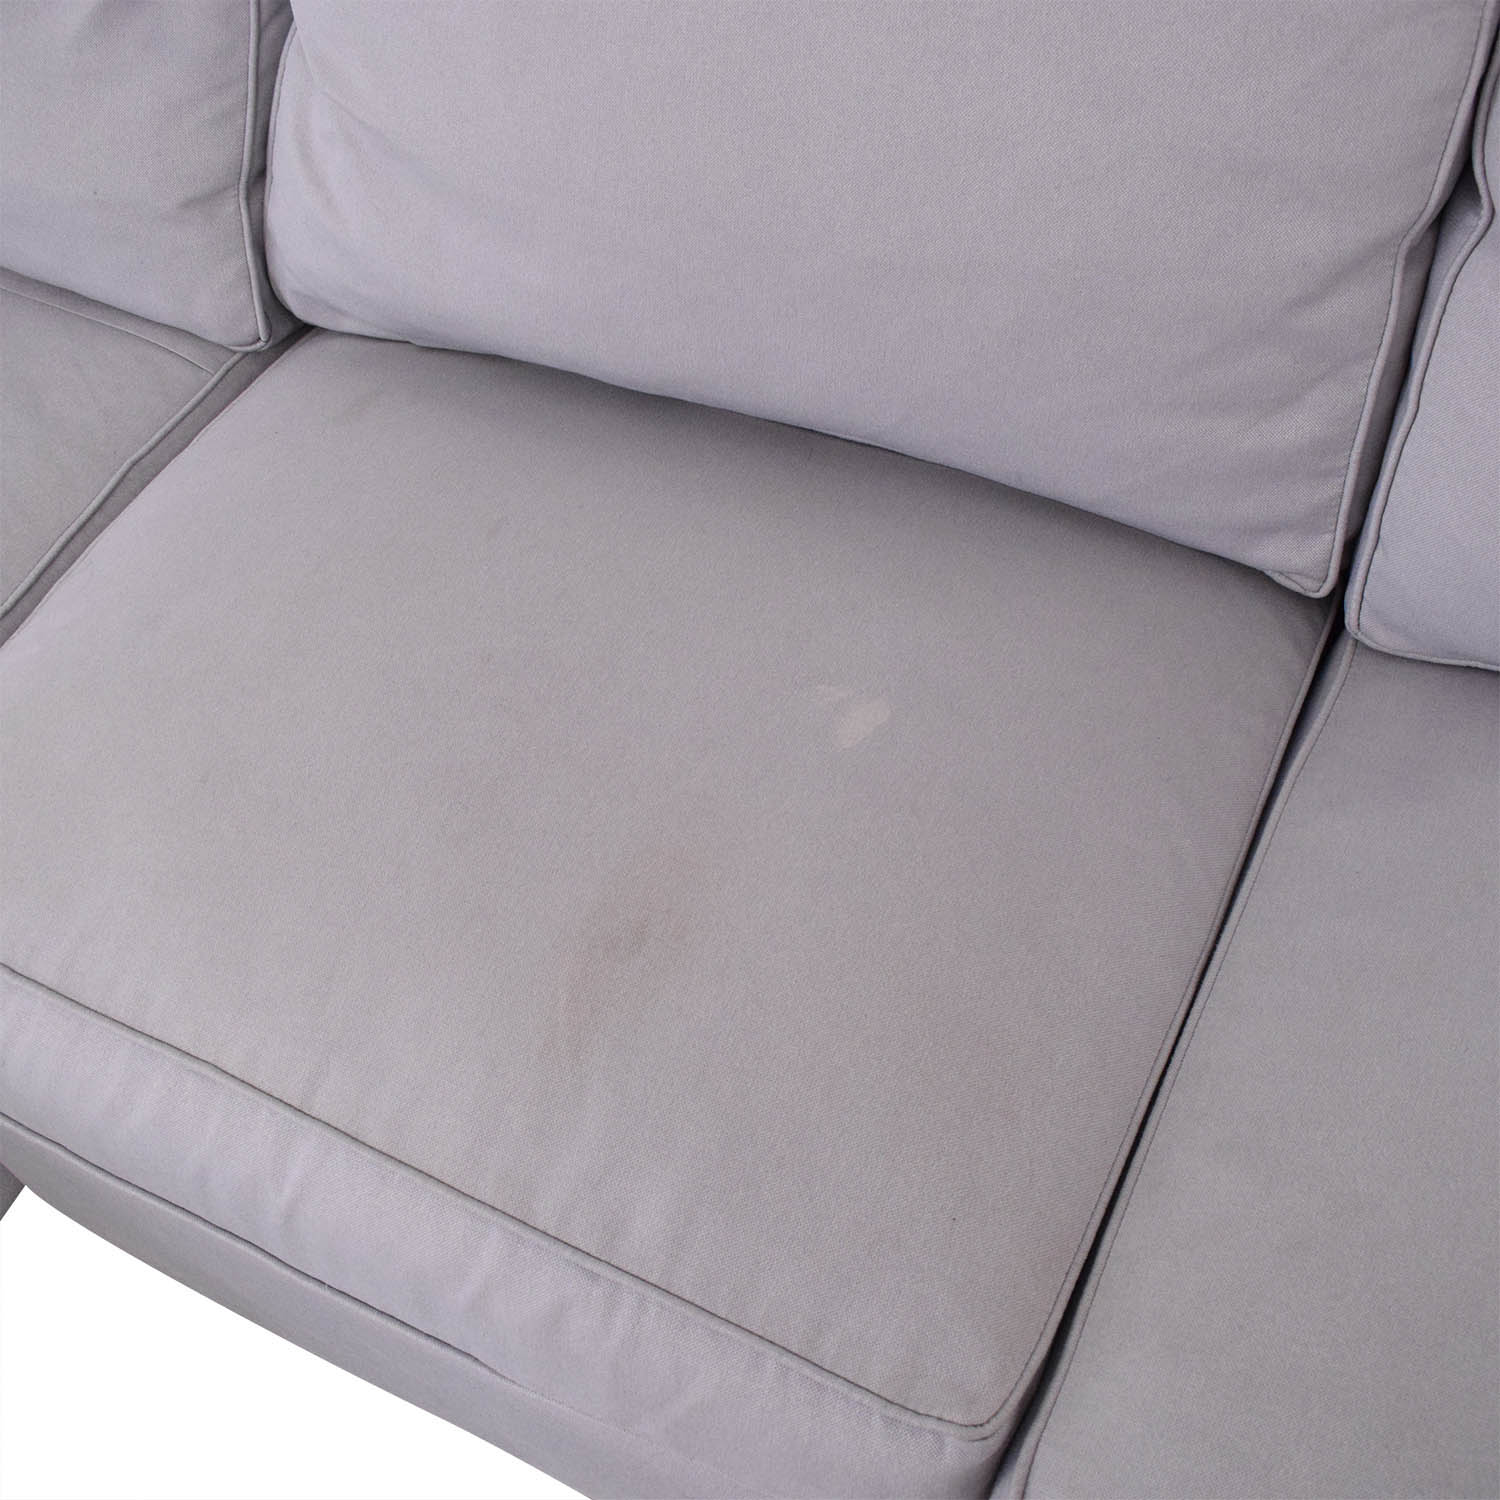 Room & Board Room & Board Sofa with Chaise second hand